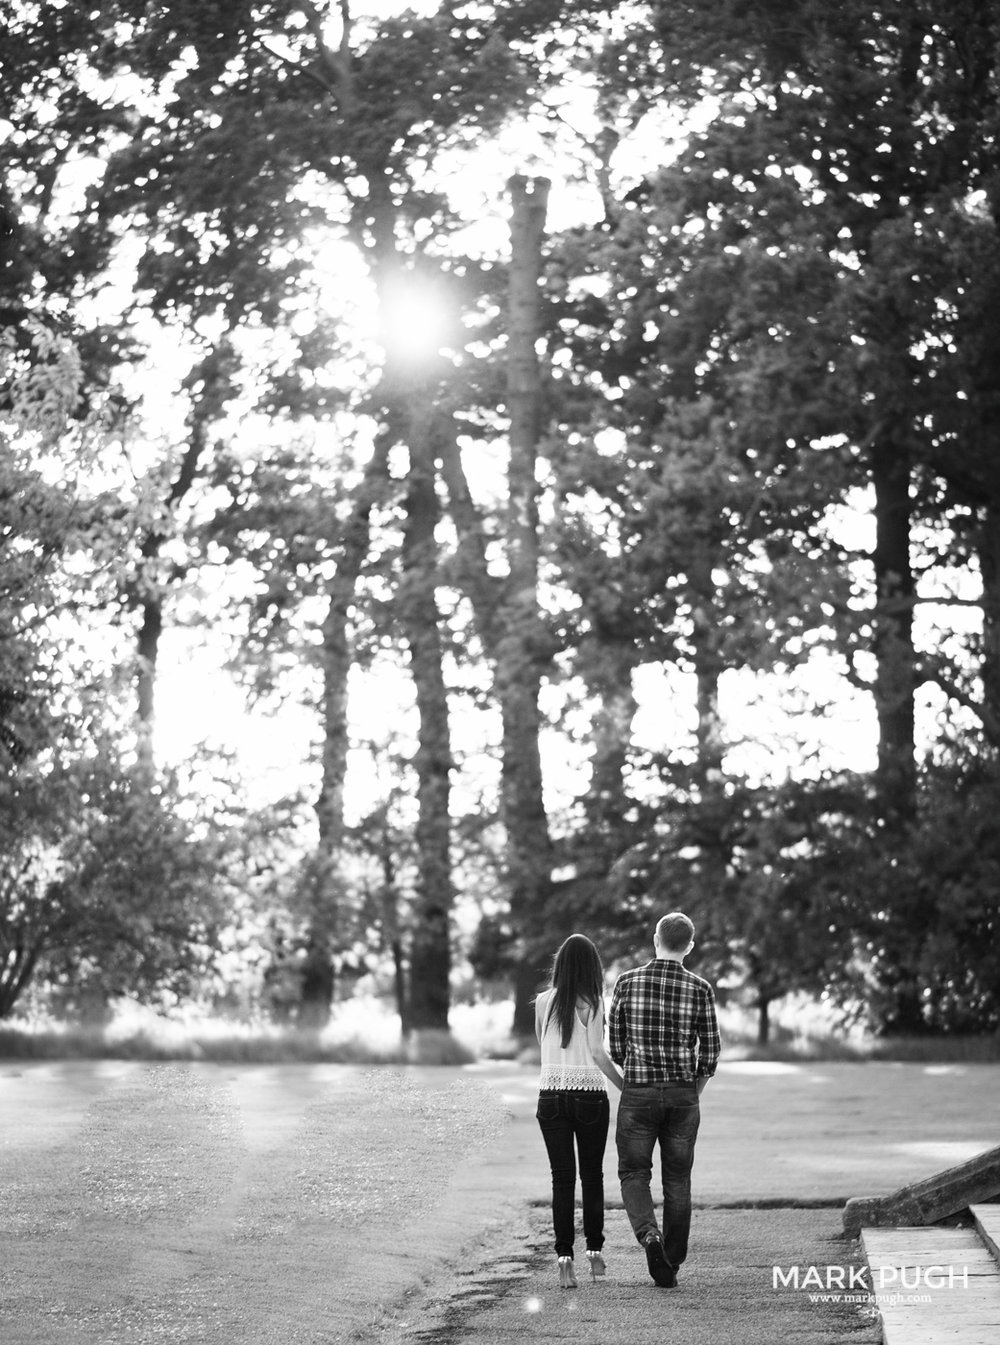 044  - Jacqueline and David - preWED Photography session at Kelham House Country Manor Hotel by Mark Pugh www.markpugh.com -0028.JPG